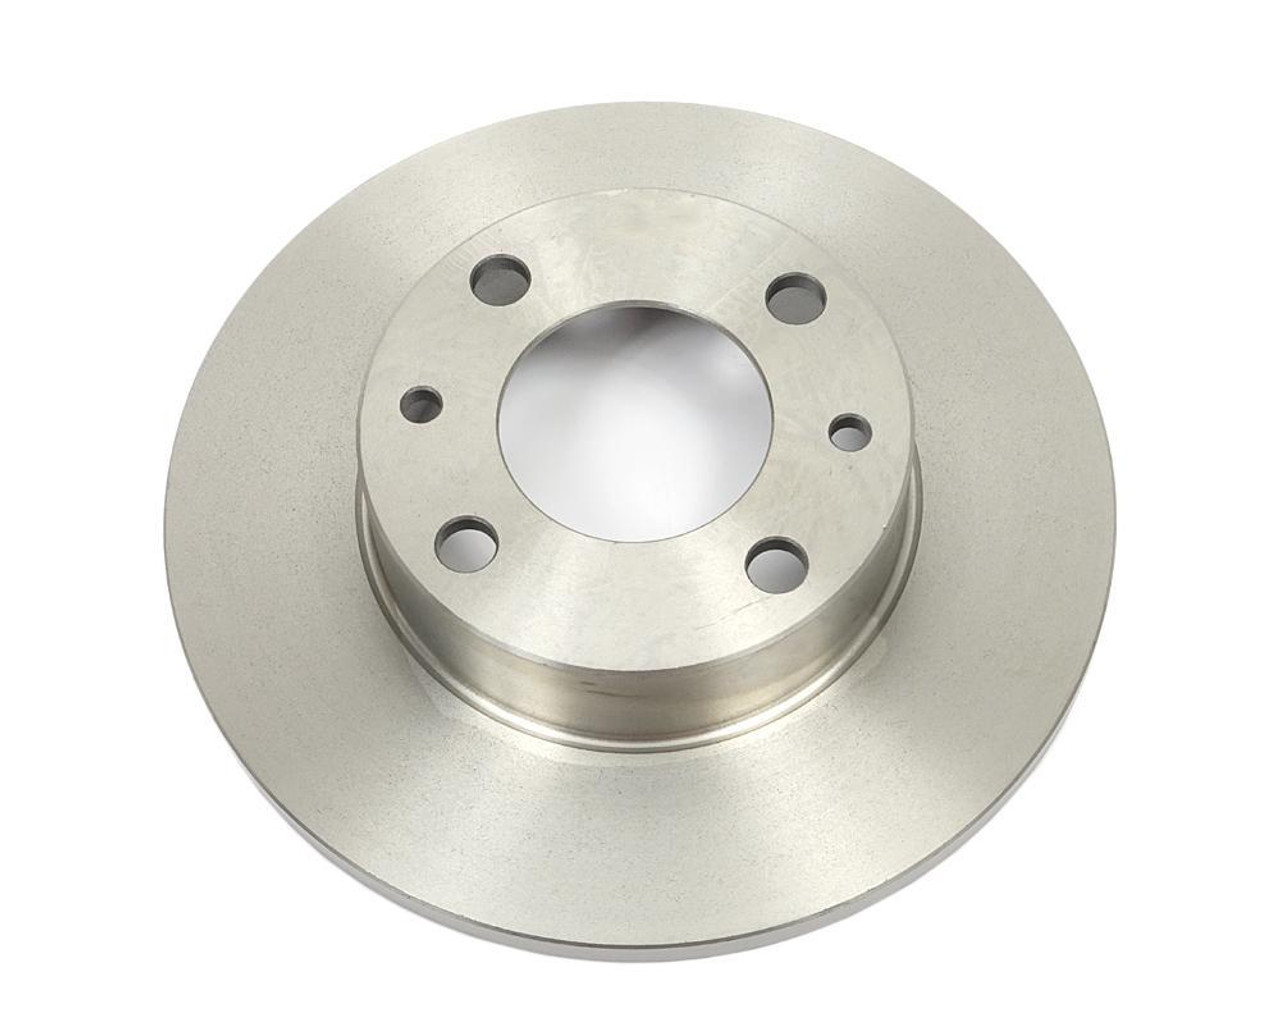 Front brake rotor or disc 2012-on FIAT 500 all 2 door non-turbo models - Pop, Sport, Lounge - Auto Ricambi